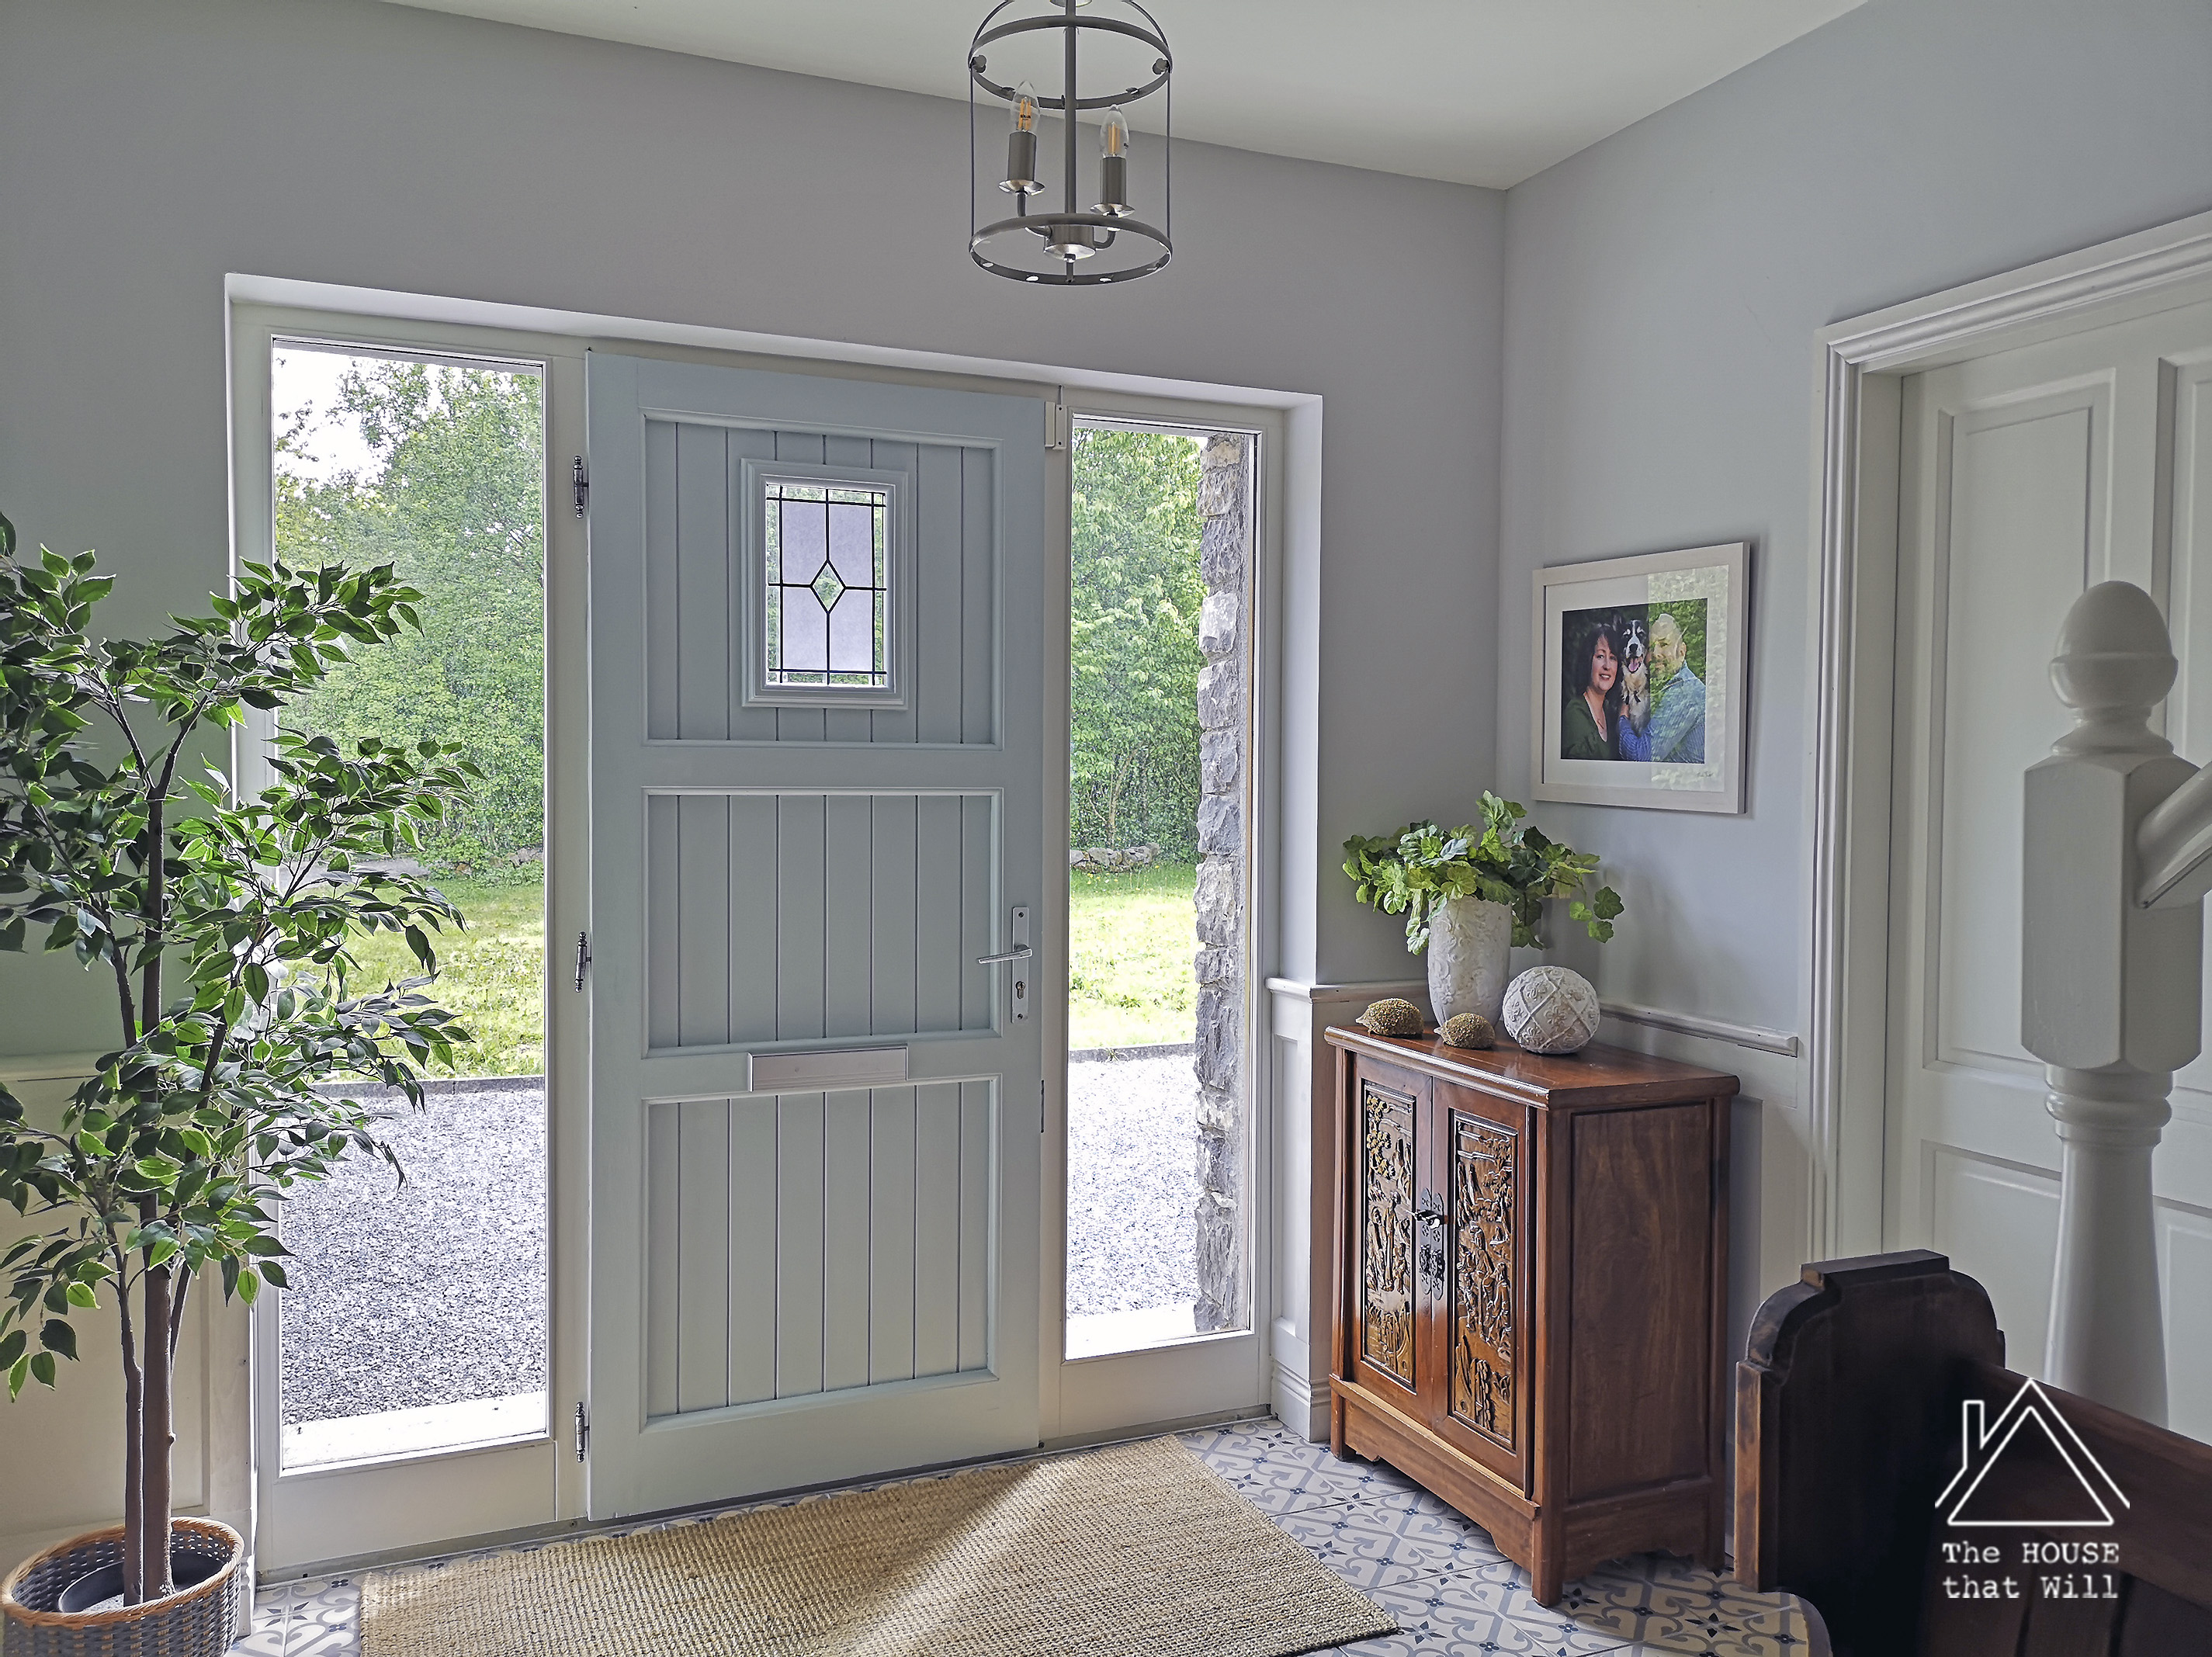 The House that Will | Leaded and Etched Glass Feature Window